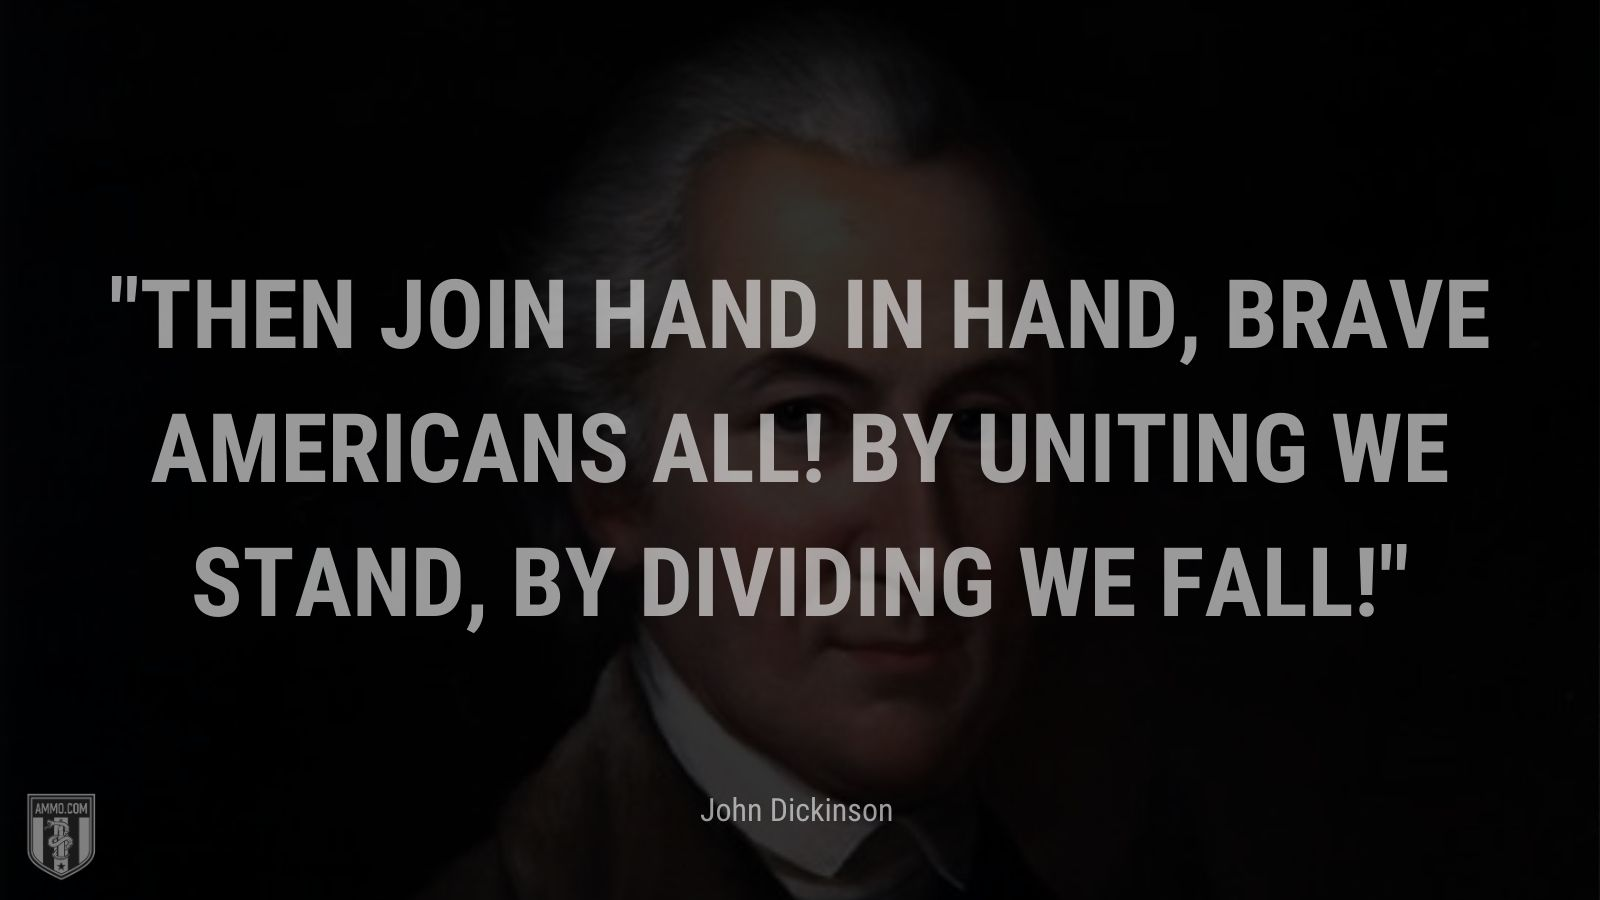 """""""Then join hand in hand, brave Americans all! By uniting we stand, by dividing we fall!"""" - John Dickinson"""